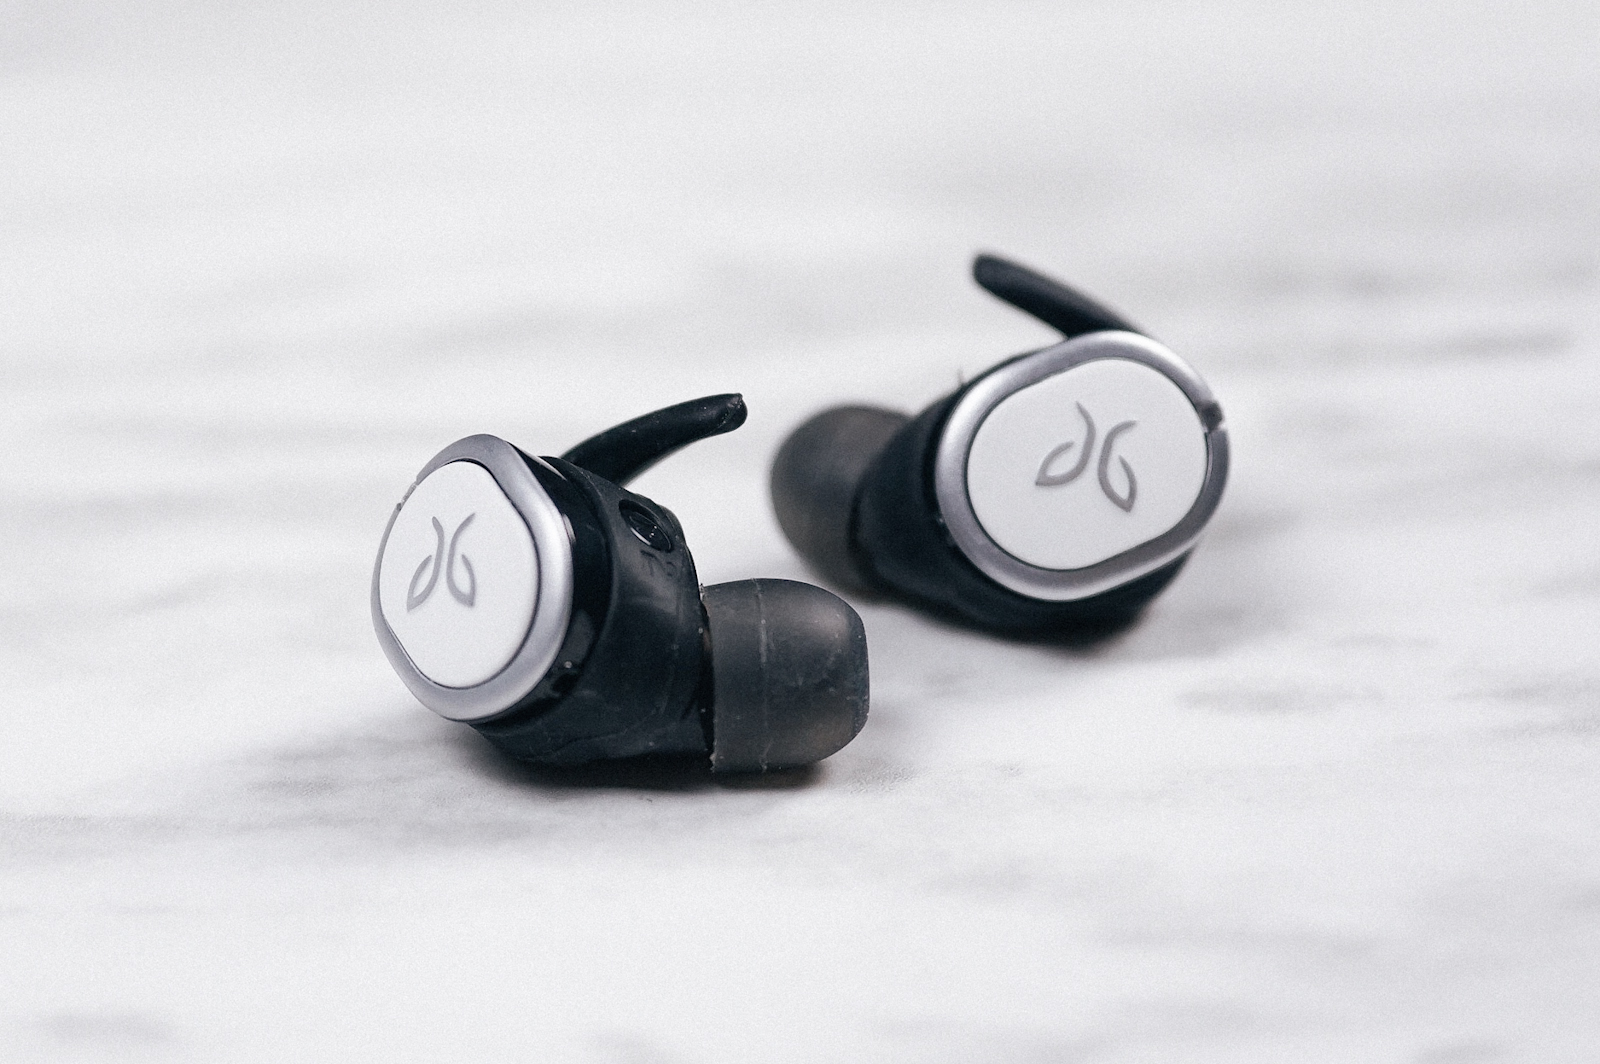 b3b74555c19 Wireless earbuds have come a long way. They're no longer the heavy, bulky  earbuds of days gone by. Instead, many of today's earbuds are sleek and  durable, ...